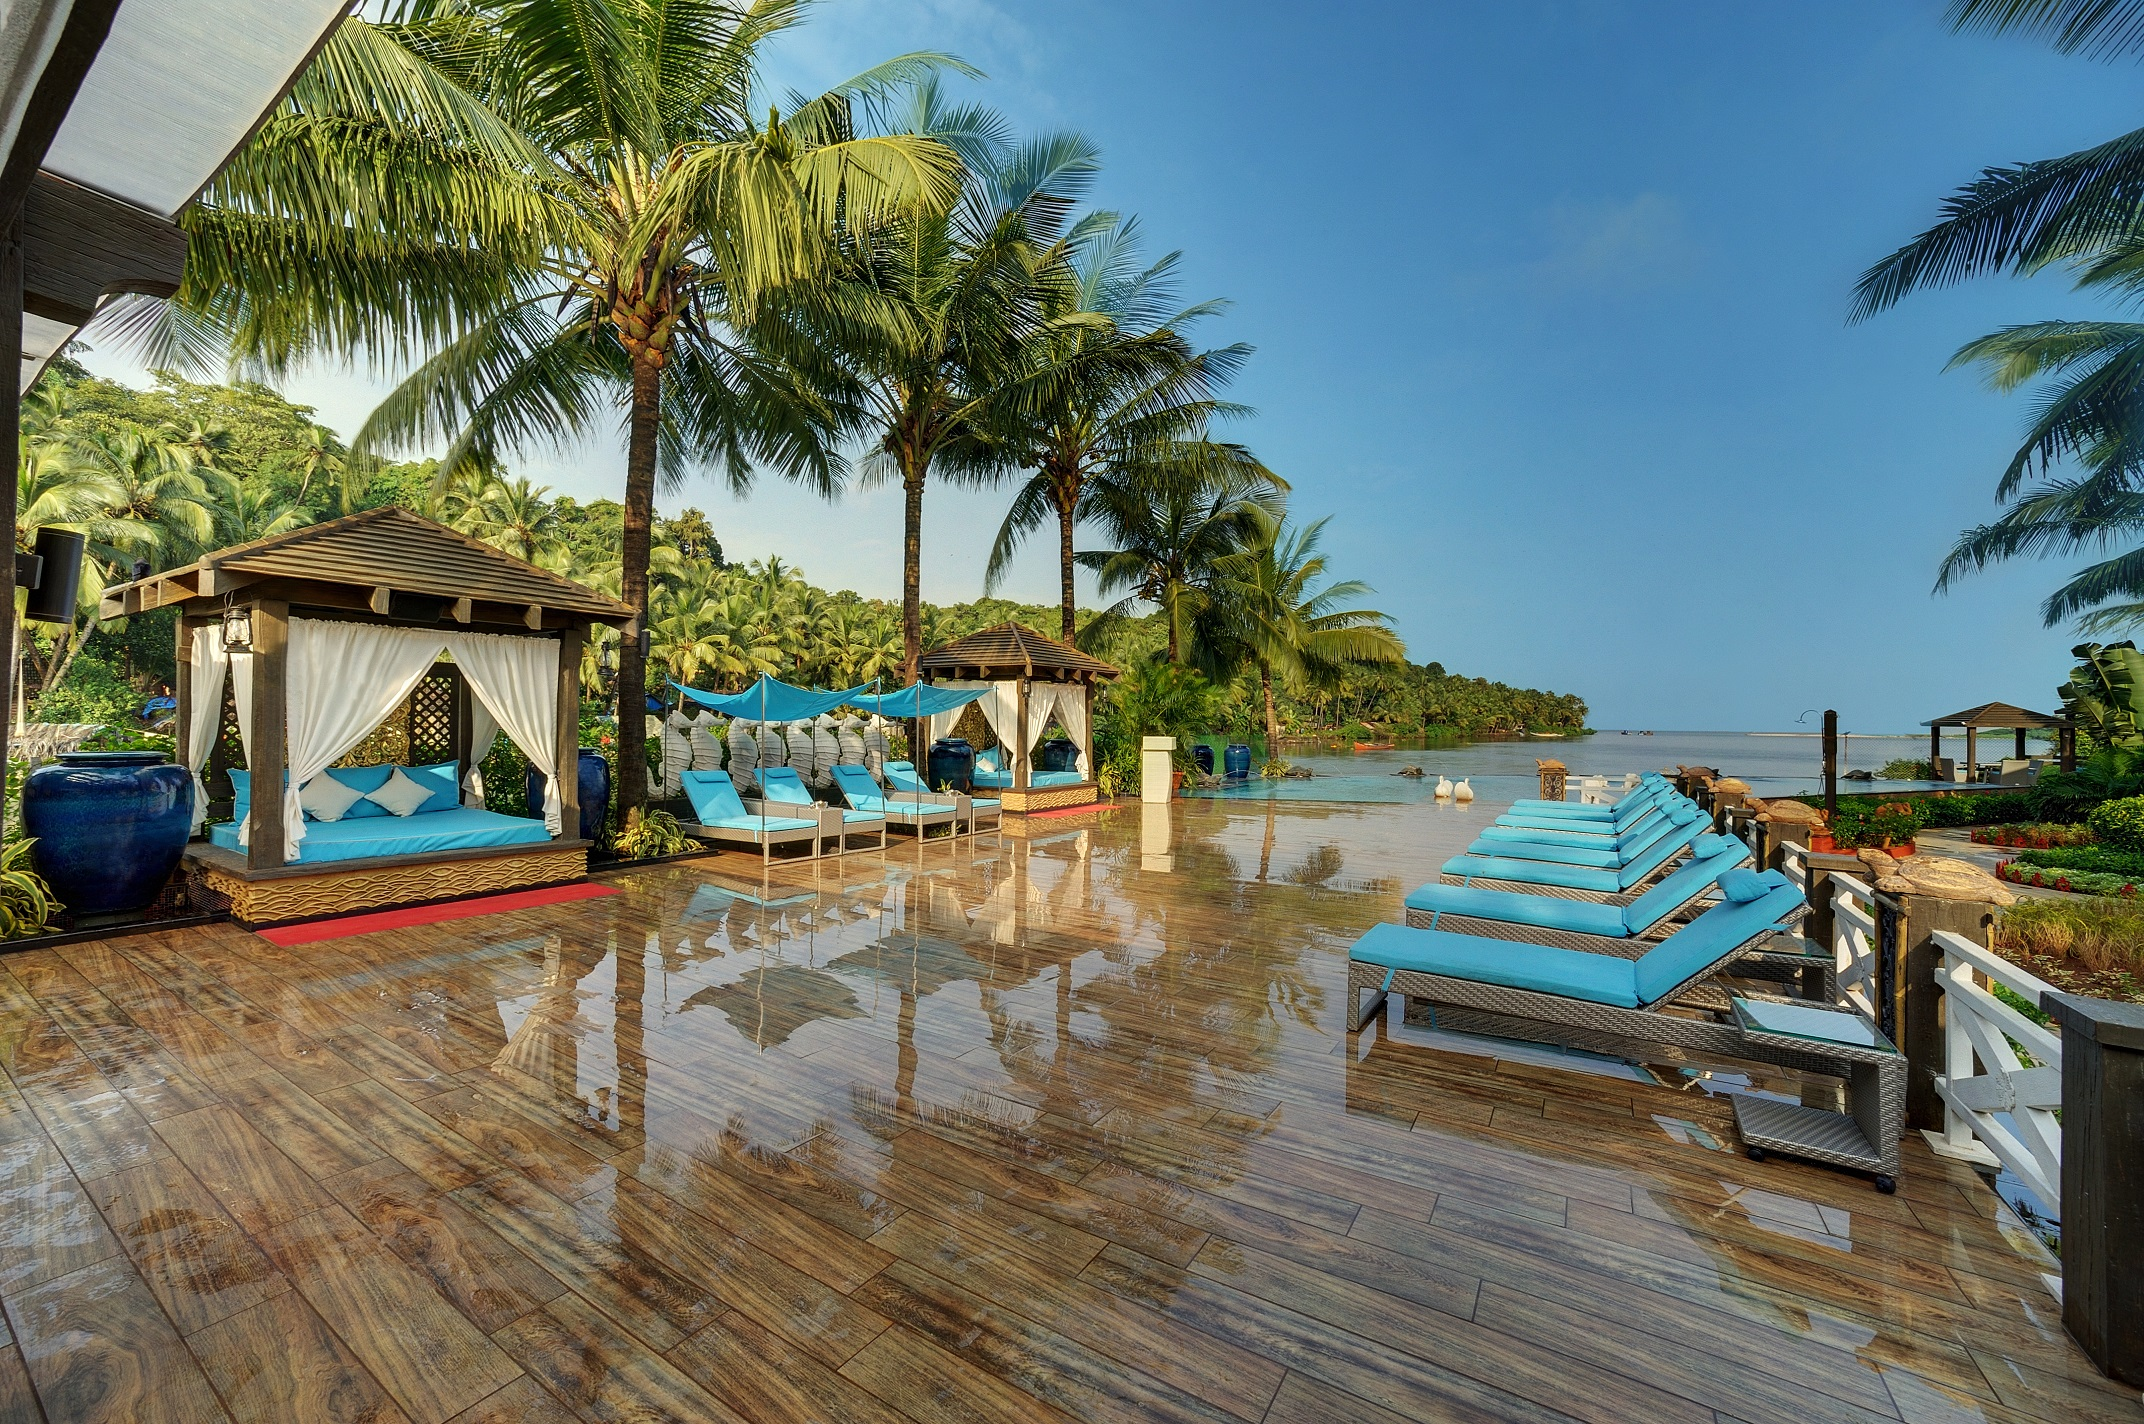 Beach hotels resorts in india for Motel luxury